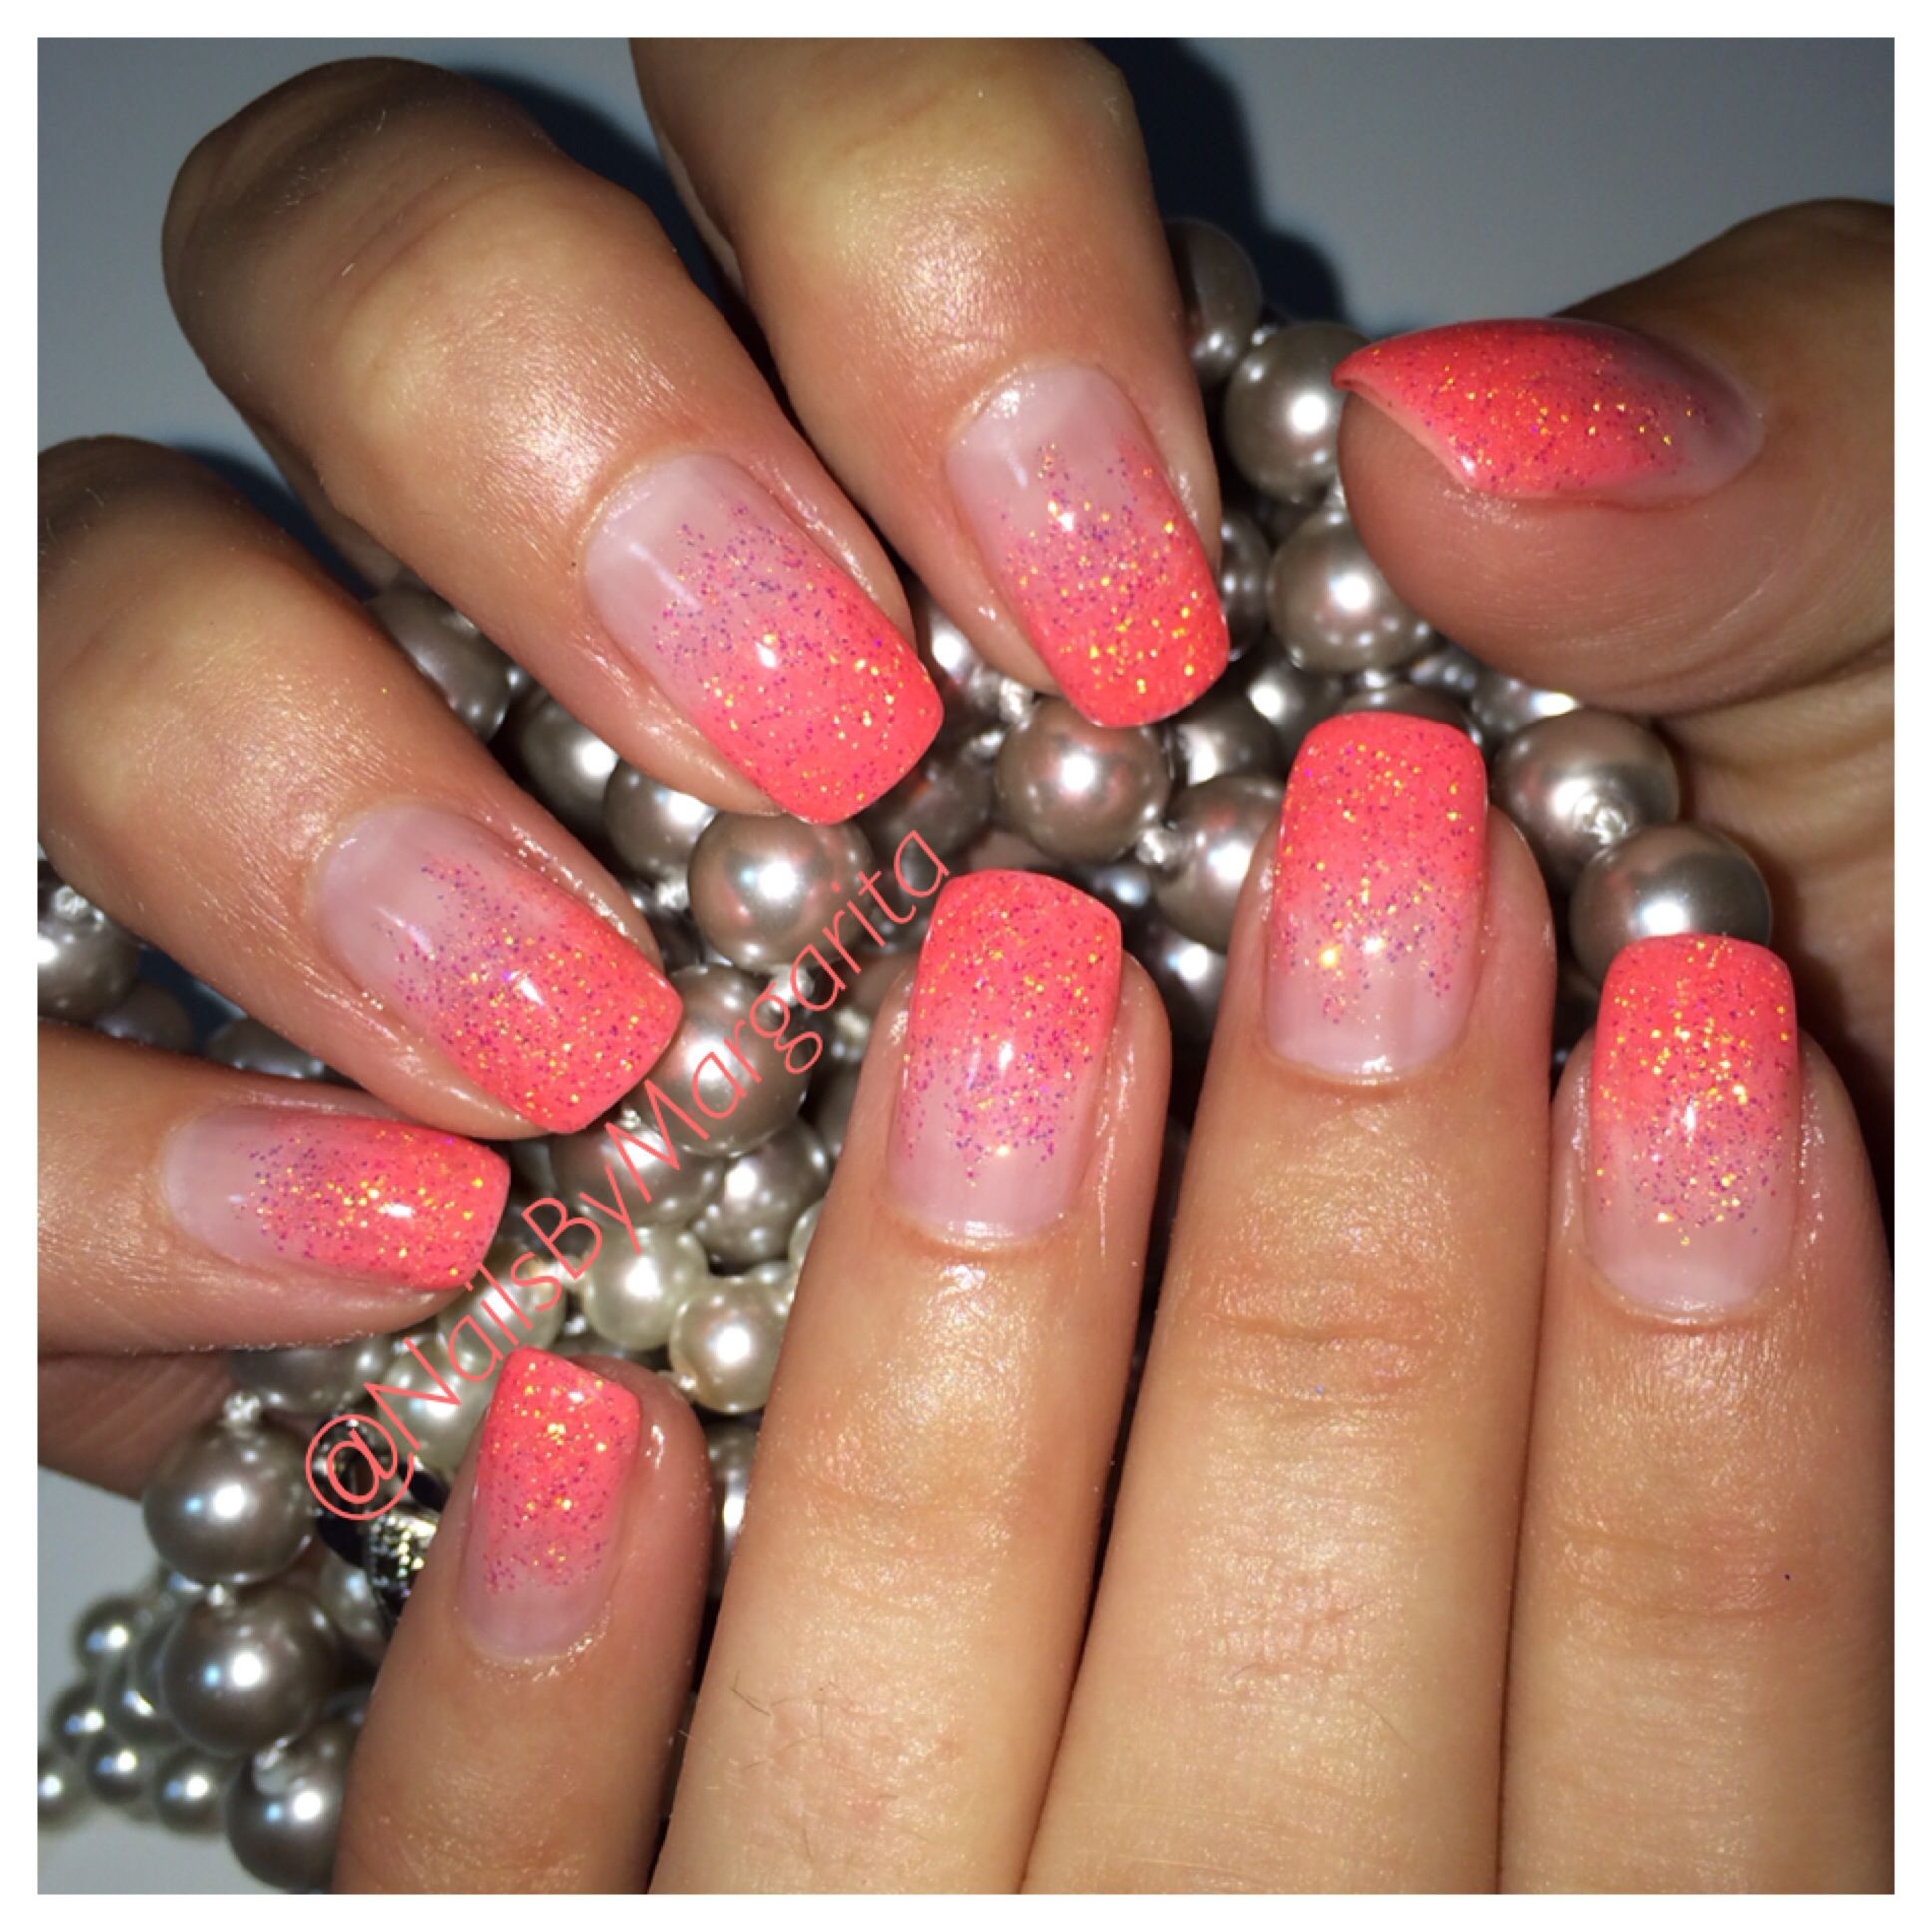 Coral Ombr 233 Nails Glitter Gel Summer 2014 Nail Design